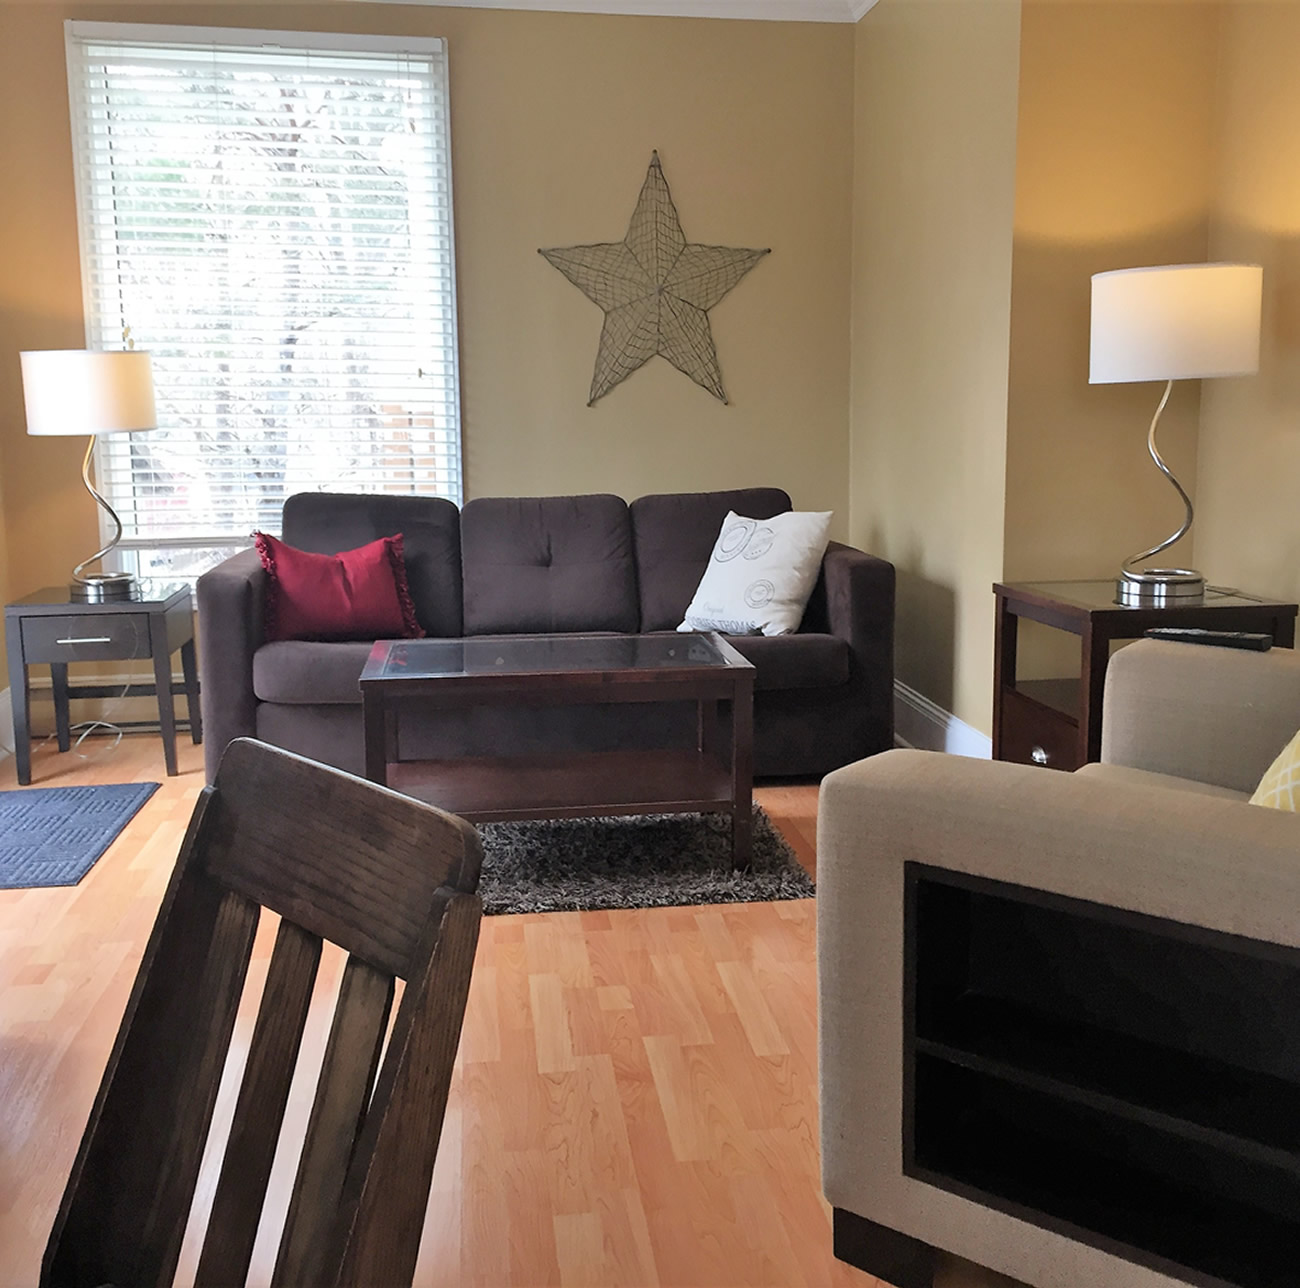 Furnished Apartment: Executive Suites And Furnished Apartment Rentals In St